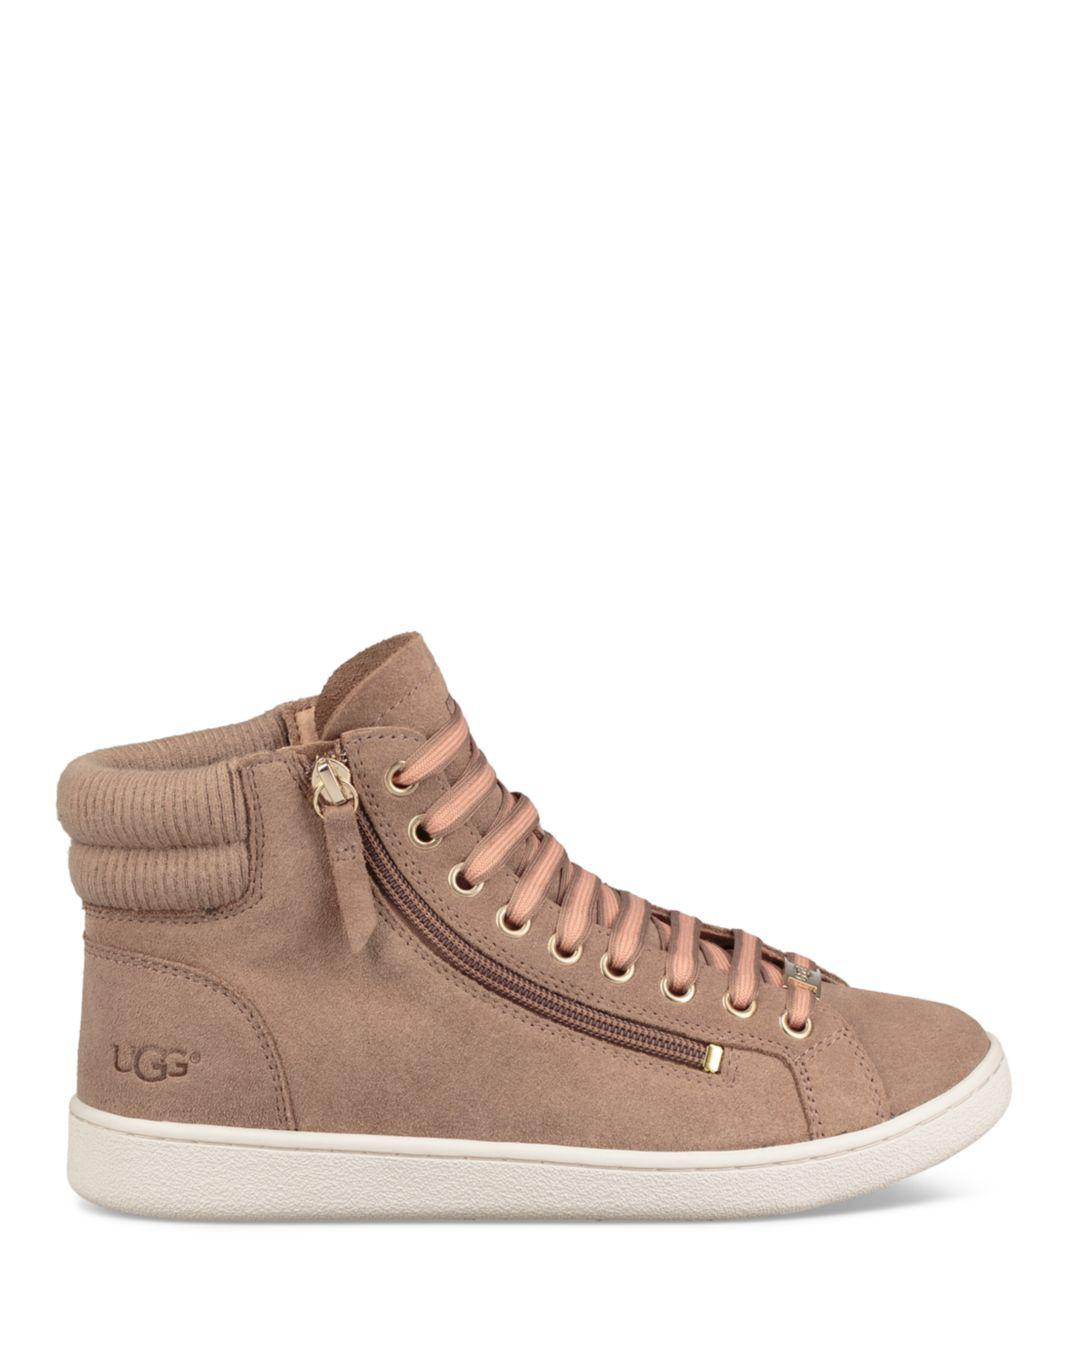 36108738734 Lyst - UGG Women's Olive Leather High Top Sneakers in Brown - Save 53%